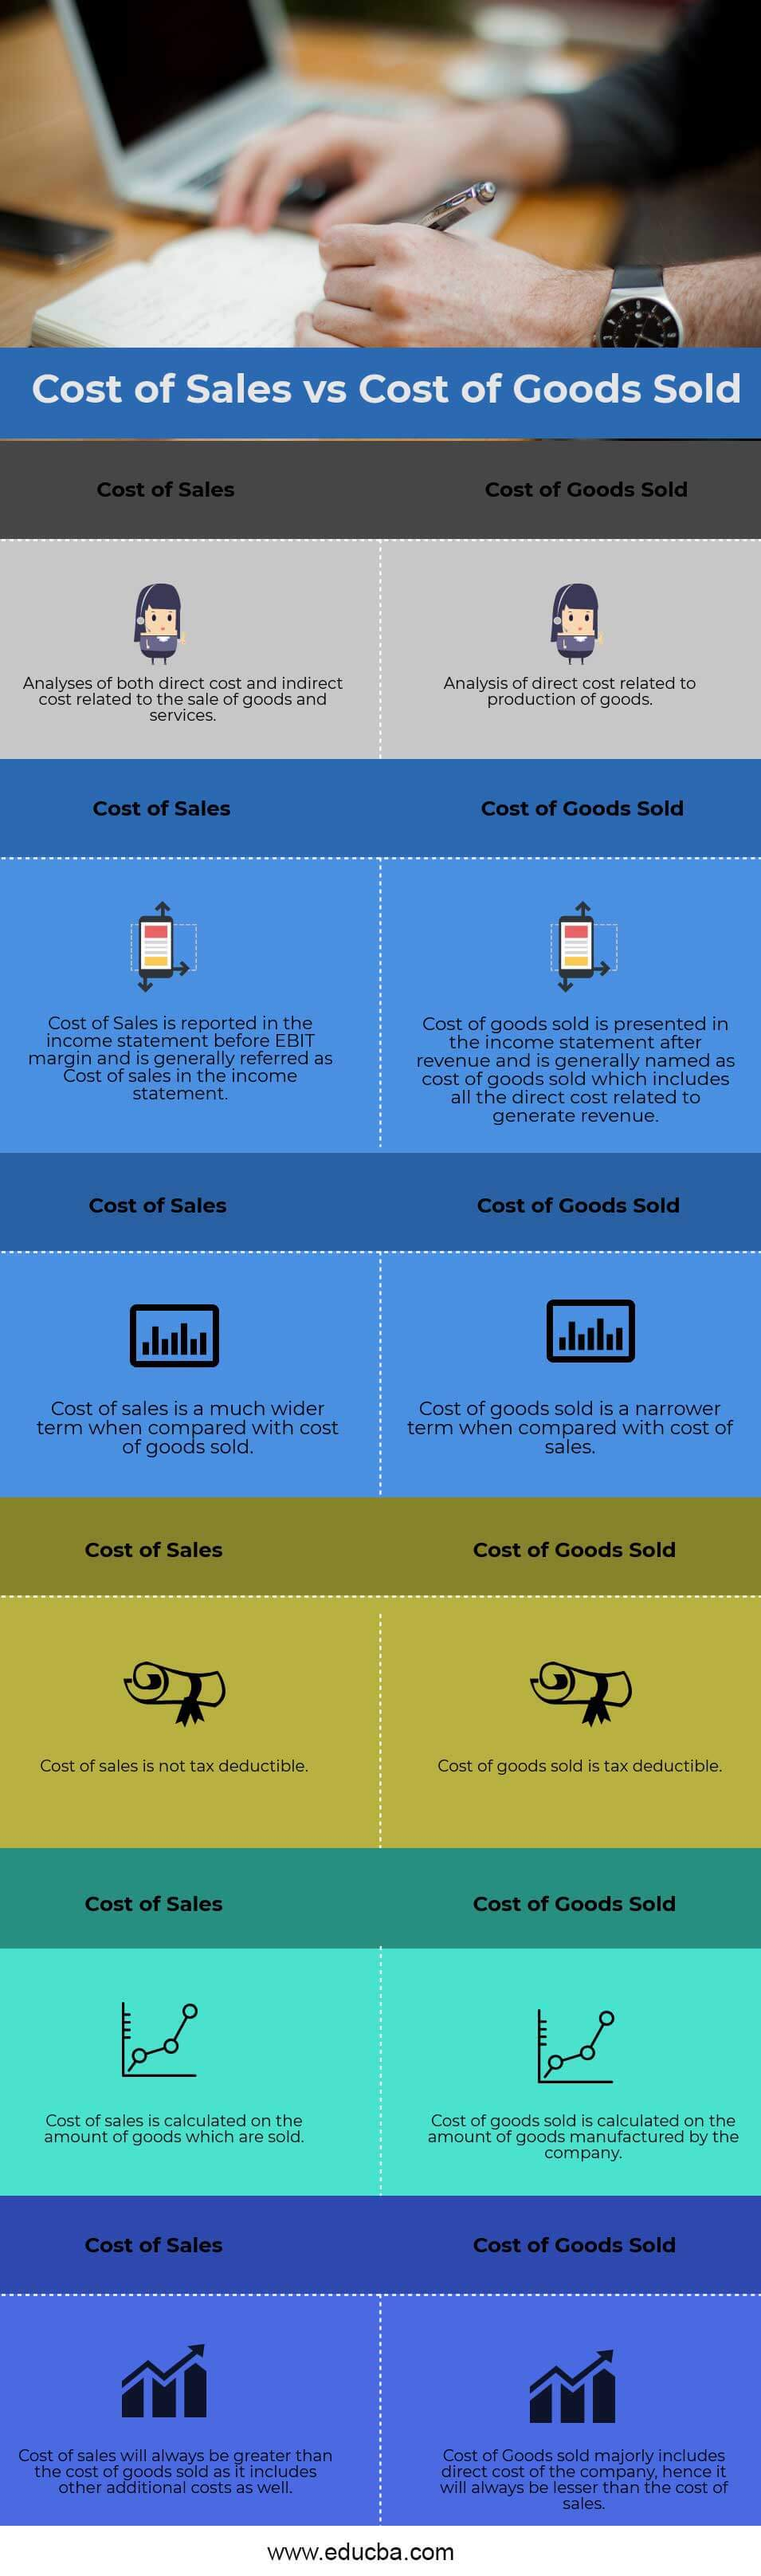 Cost-of-Sales-VS-Cost-of-Goods-Sold-infographic